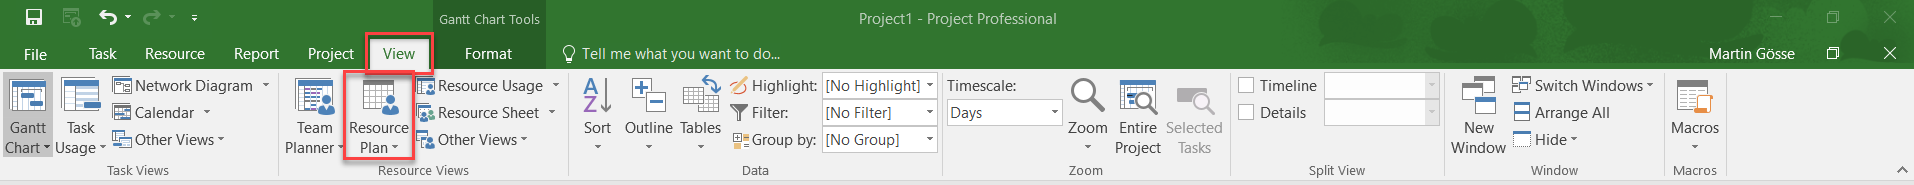 Using Resource Engagements in MS Project 2016 3